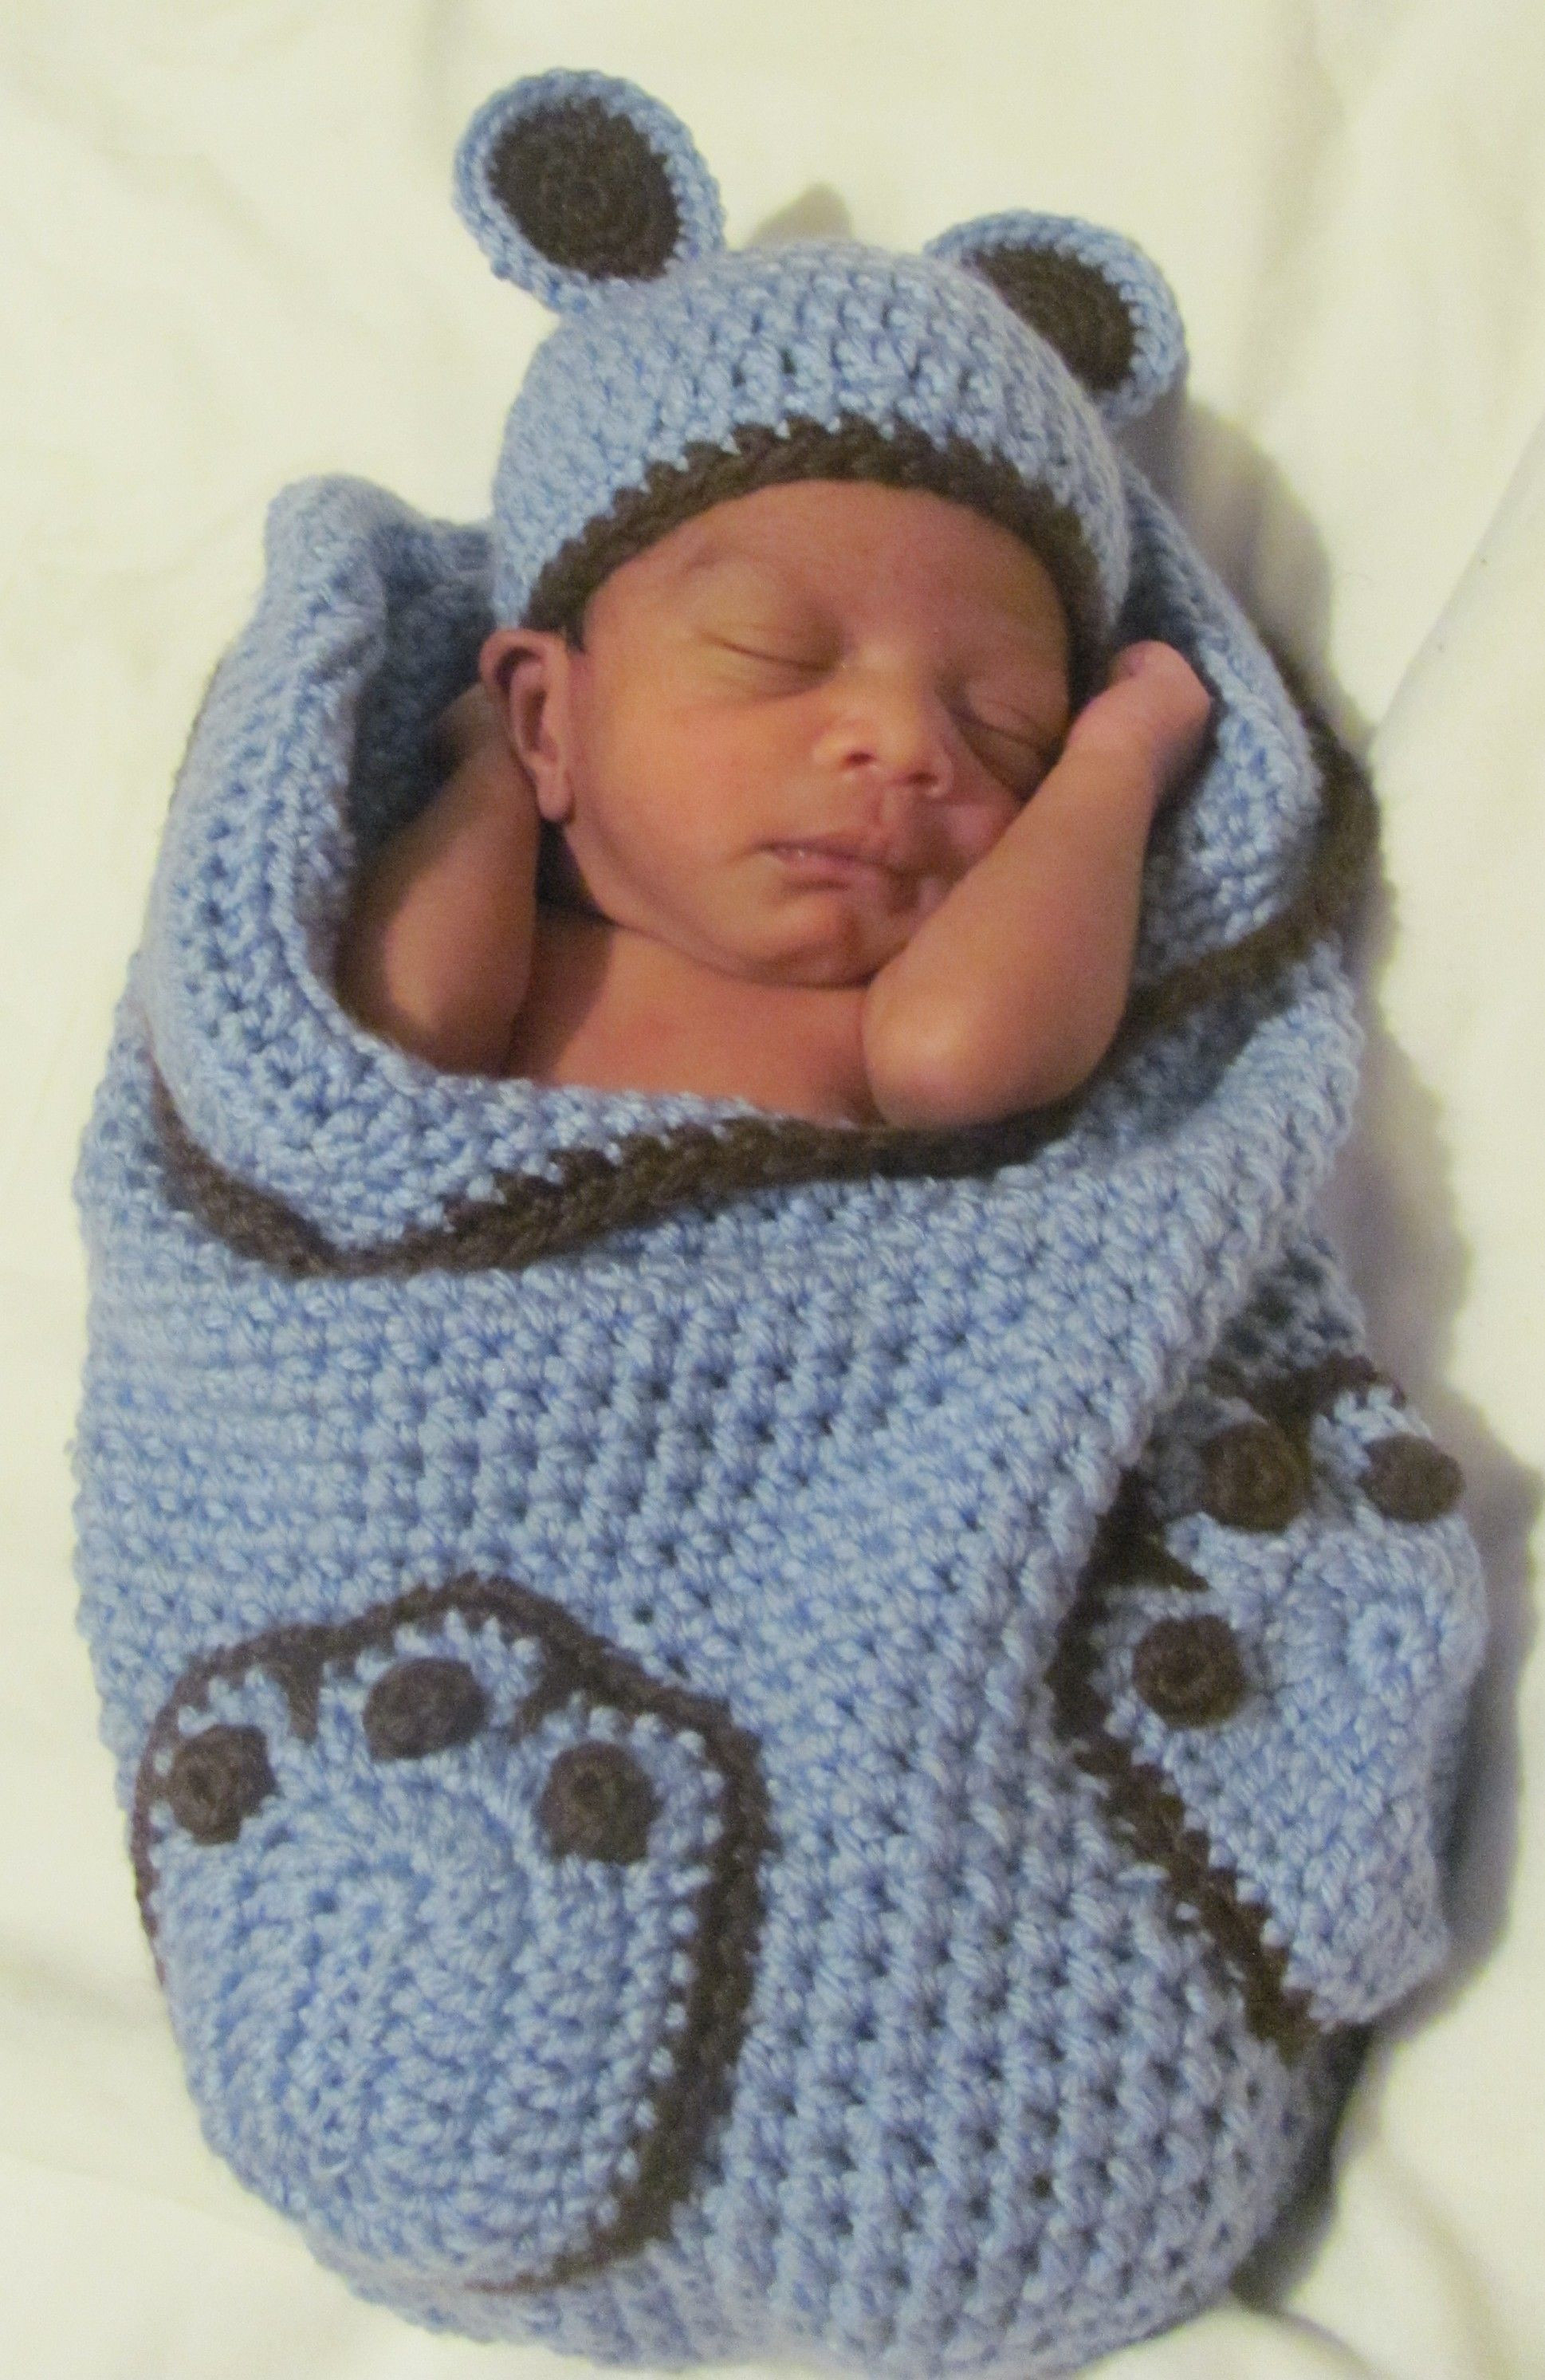 Baby Cocoon Crochet Pattern Luxury Crochet Baby Cocoon Cake Ideas and Designs Of Marvelous 49 Images Baby Cocoon Crochet Pattern